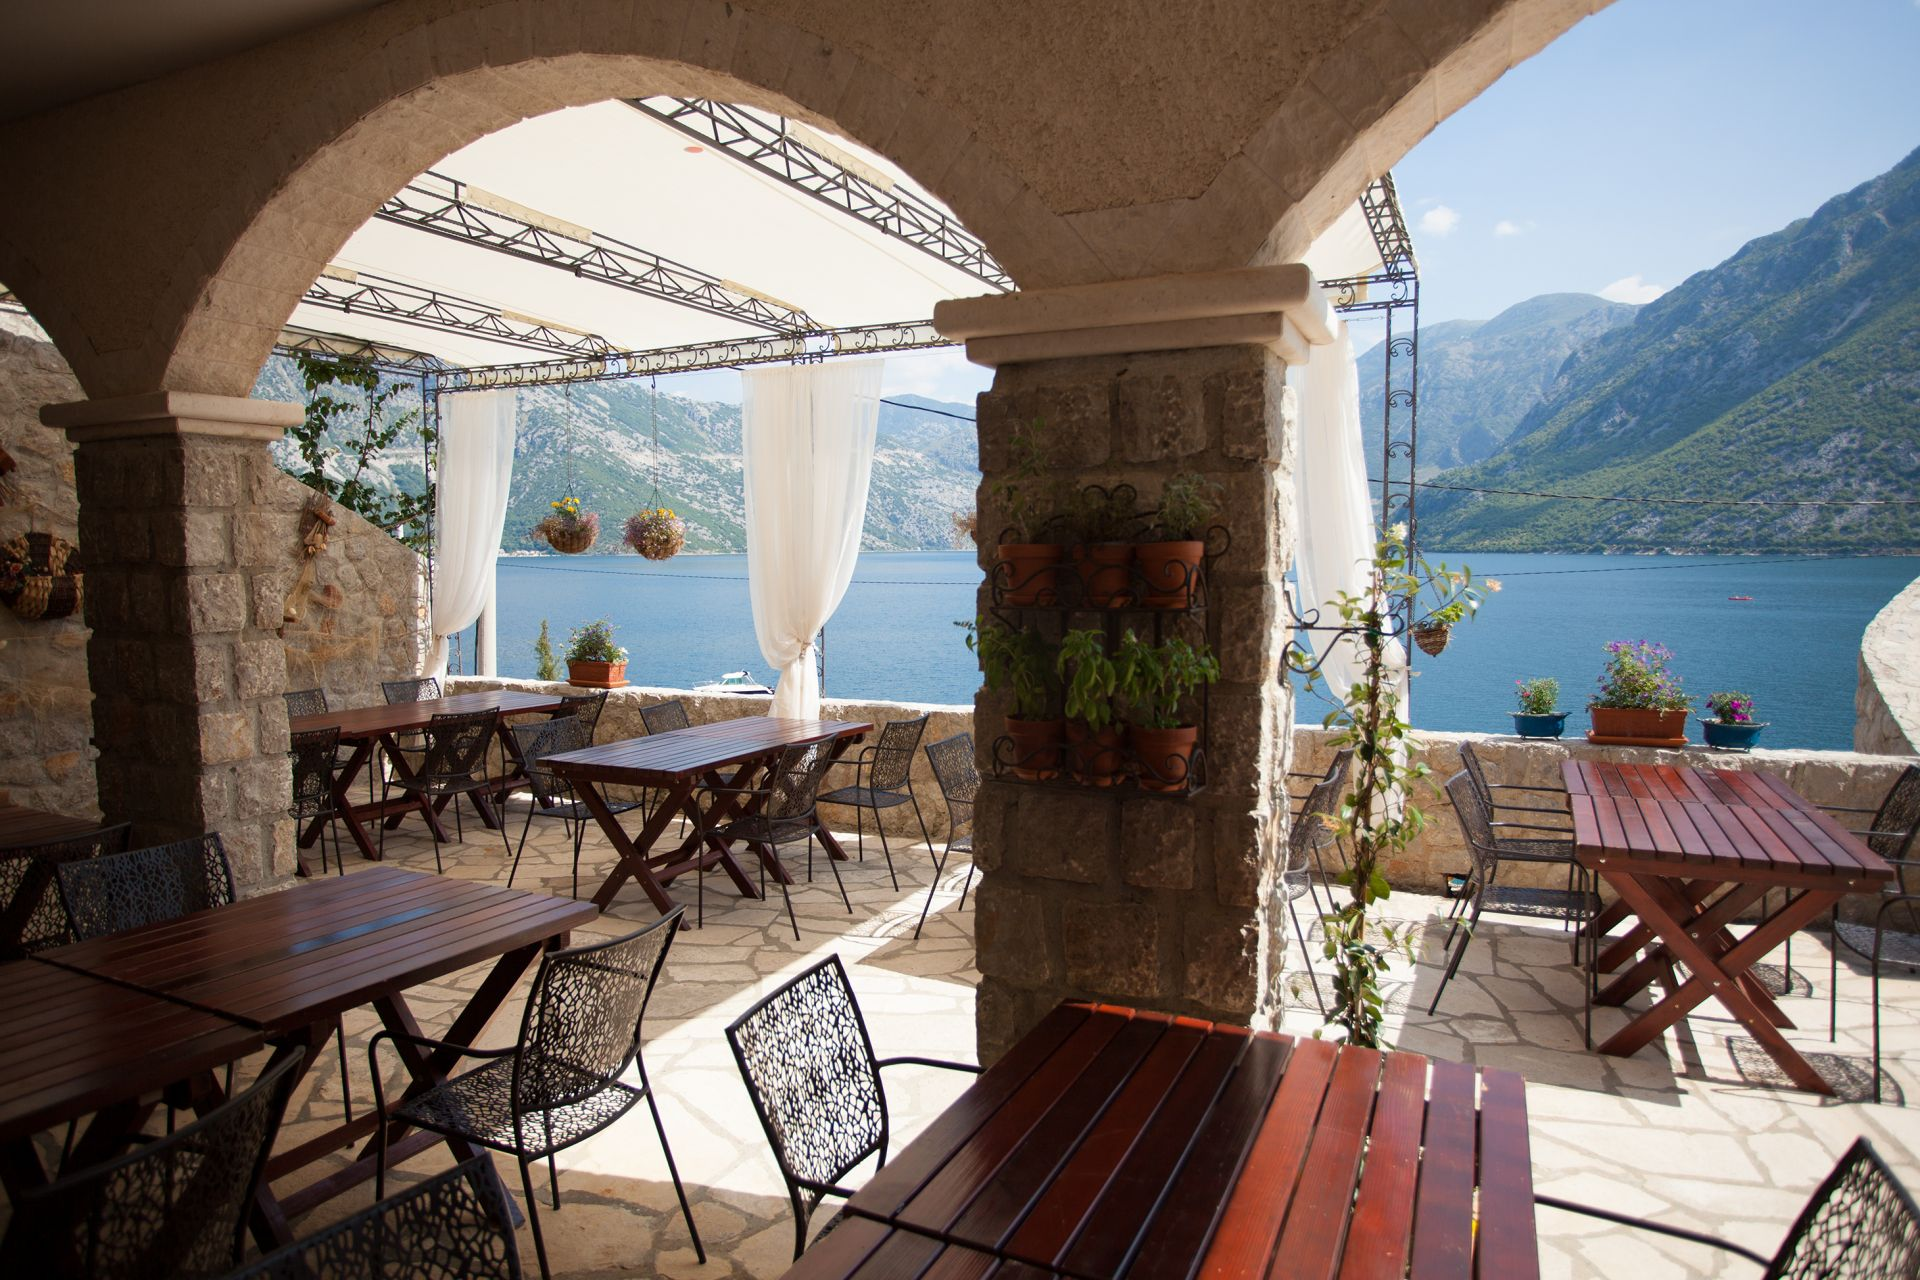 Enjoy in picturesque scenery of Boka Bay and autehntic style of the resort made with love and Montenegrin spirit, designed to blend in its magic surrondings of untouched nature.